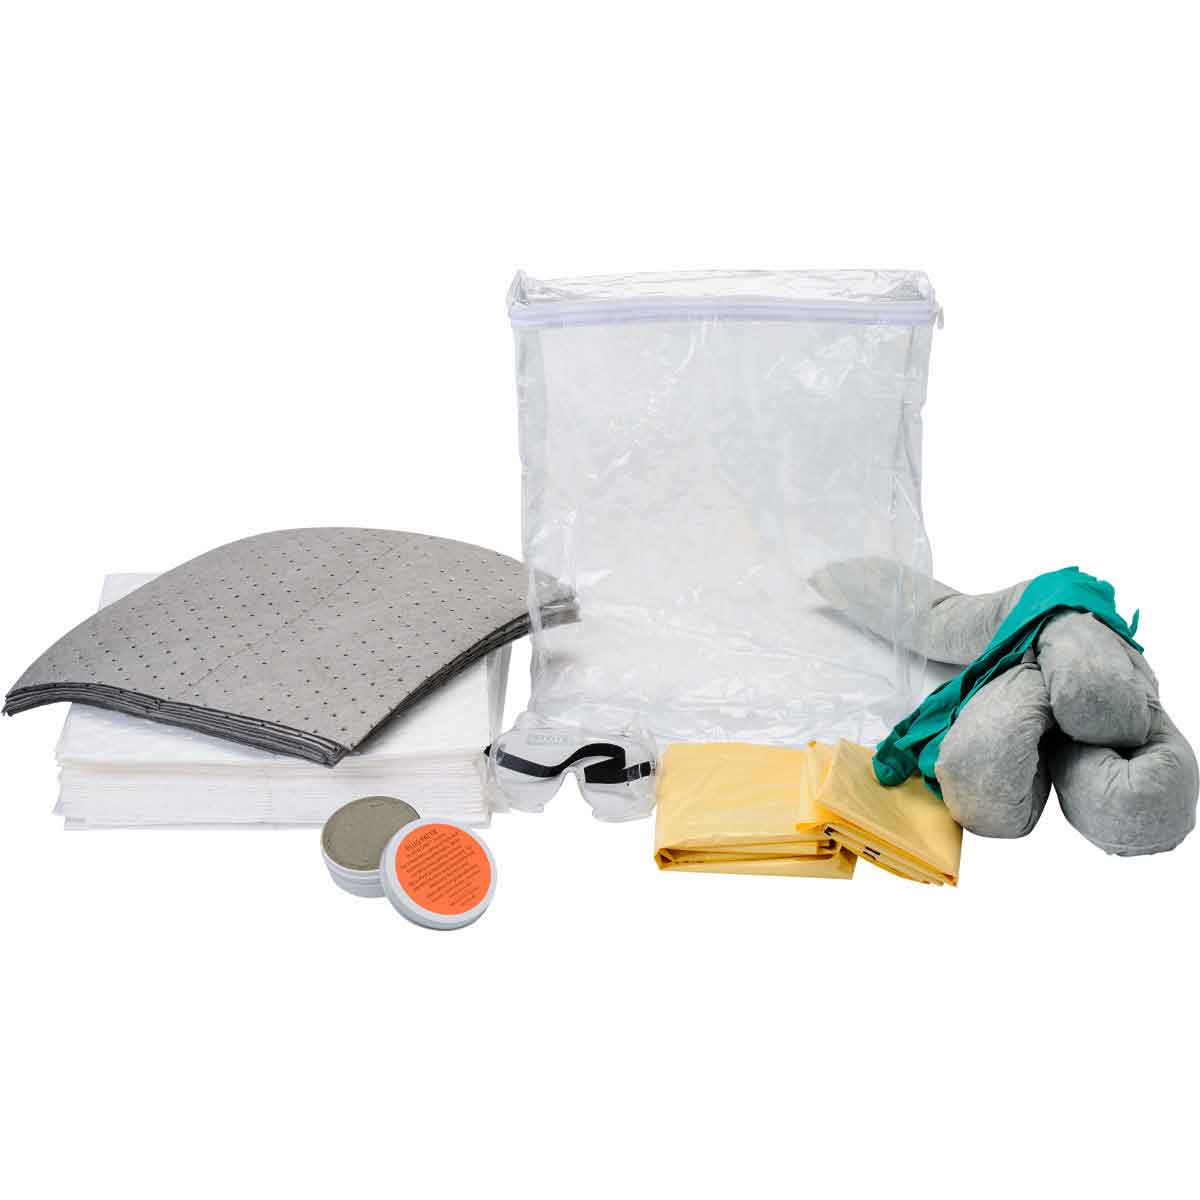 BRADY BSCSK-CB CLEAR BAG MIXED APPVEHICLE SPILL KIT